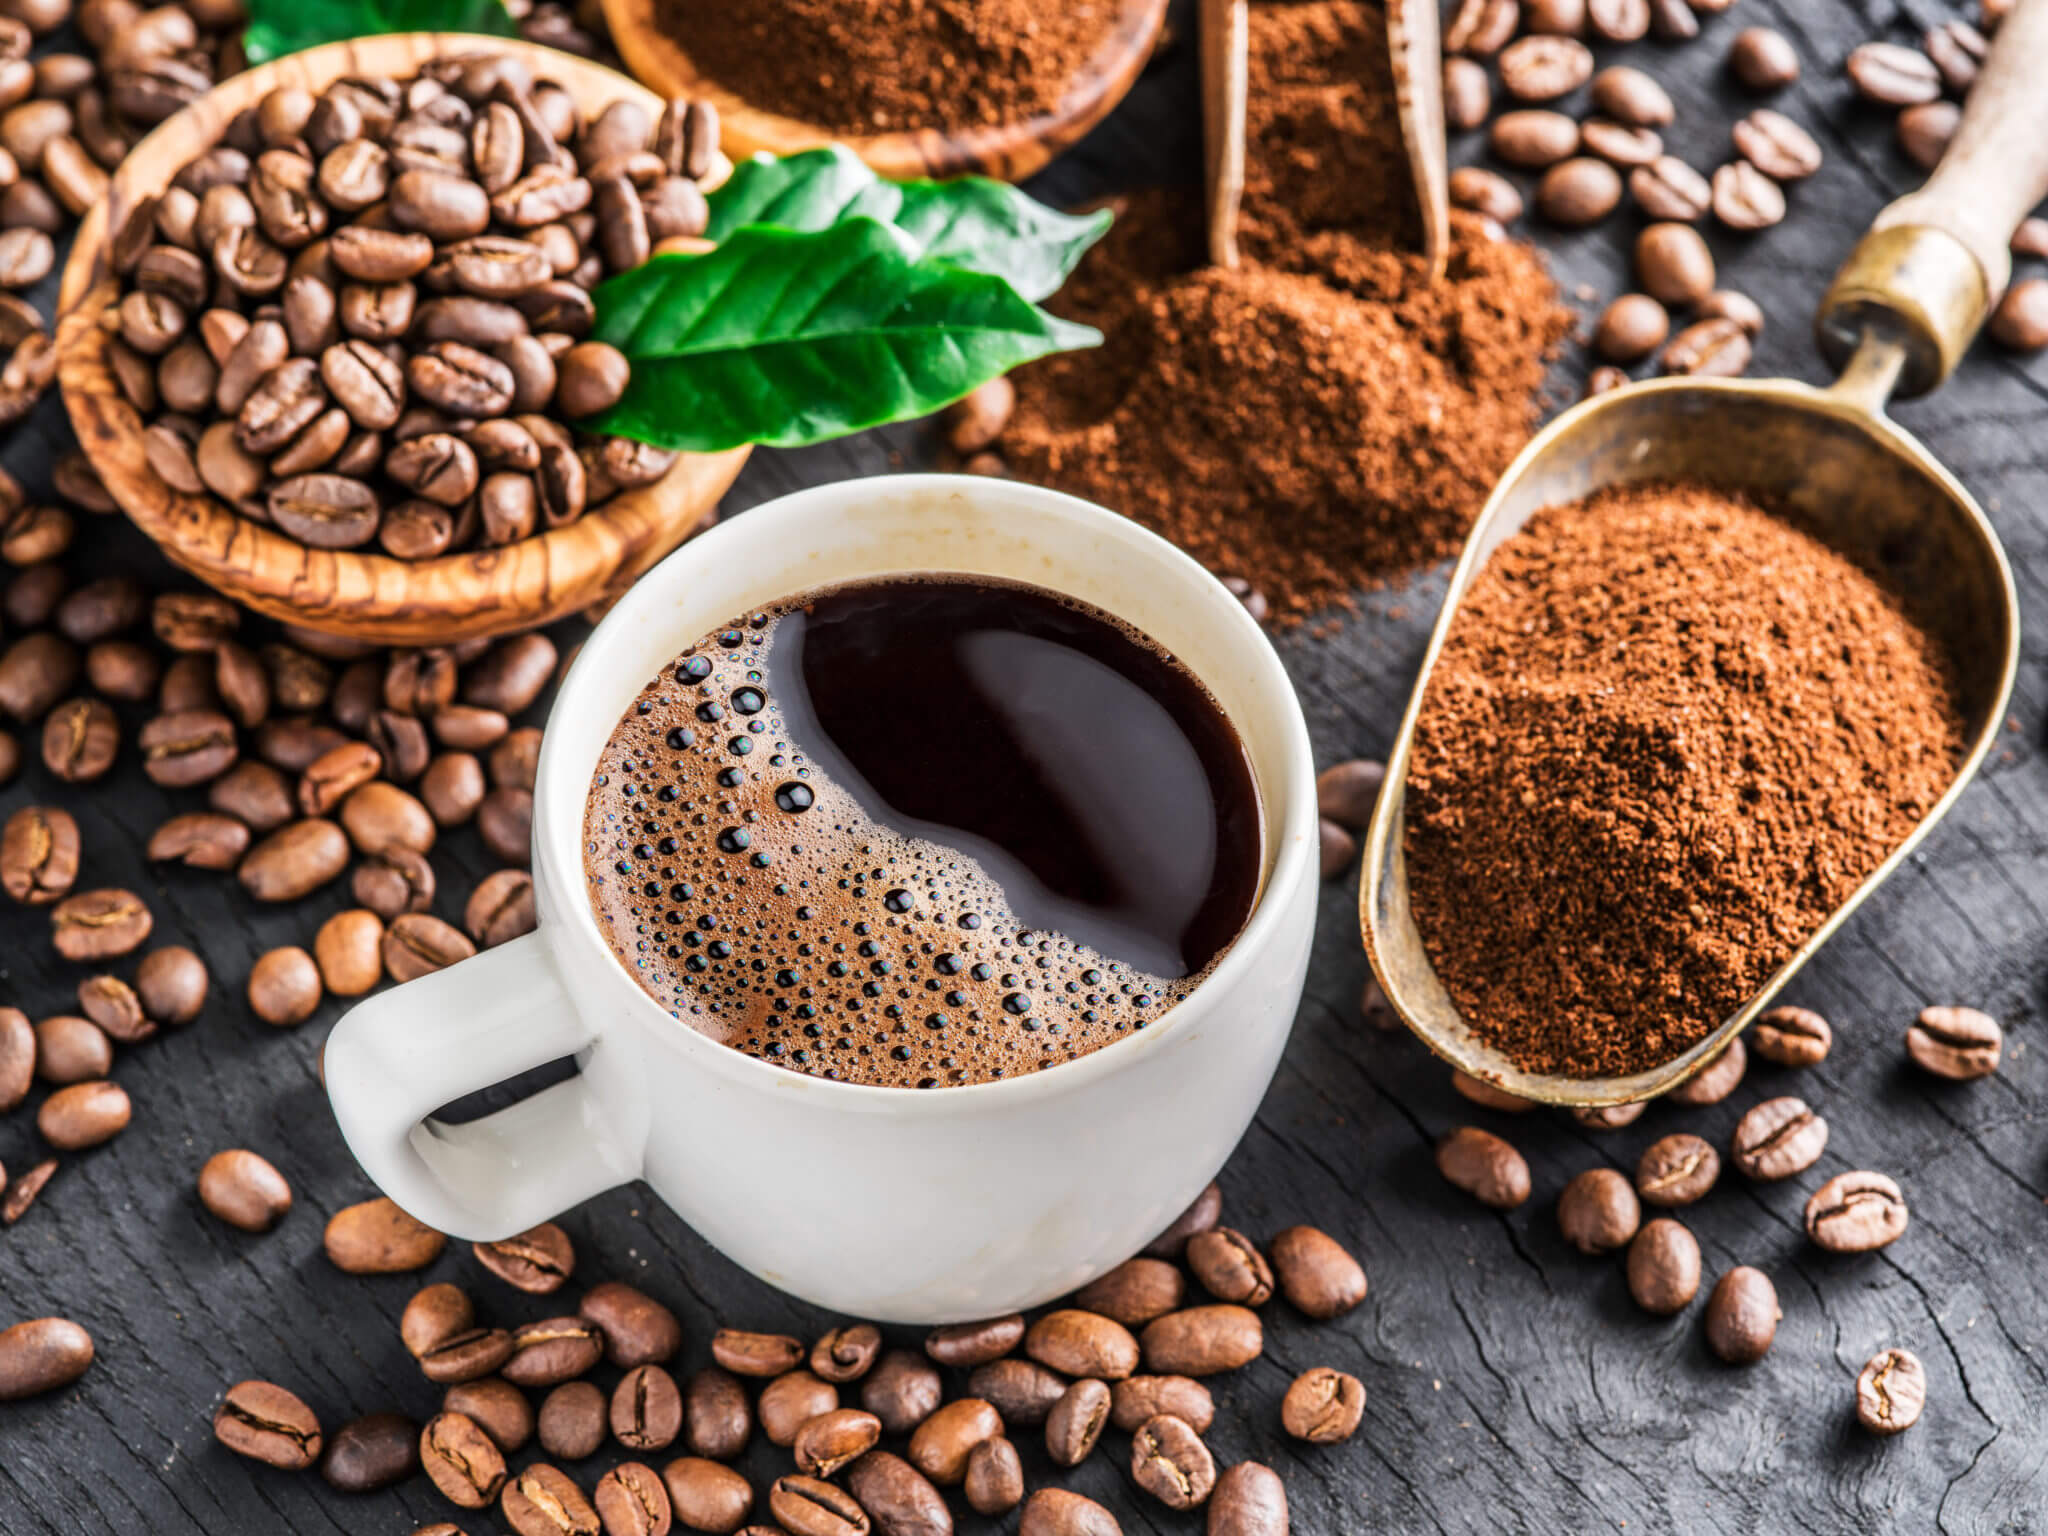 Caffeine from roasted coffee beans, ground coffee and cup of coffee on wooden